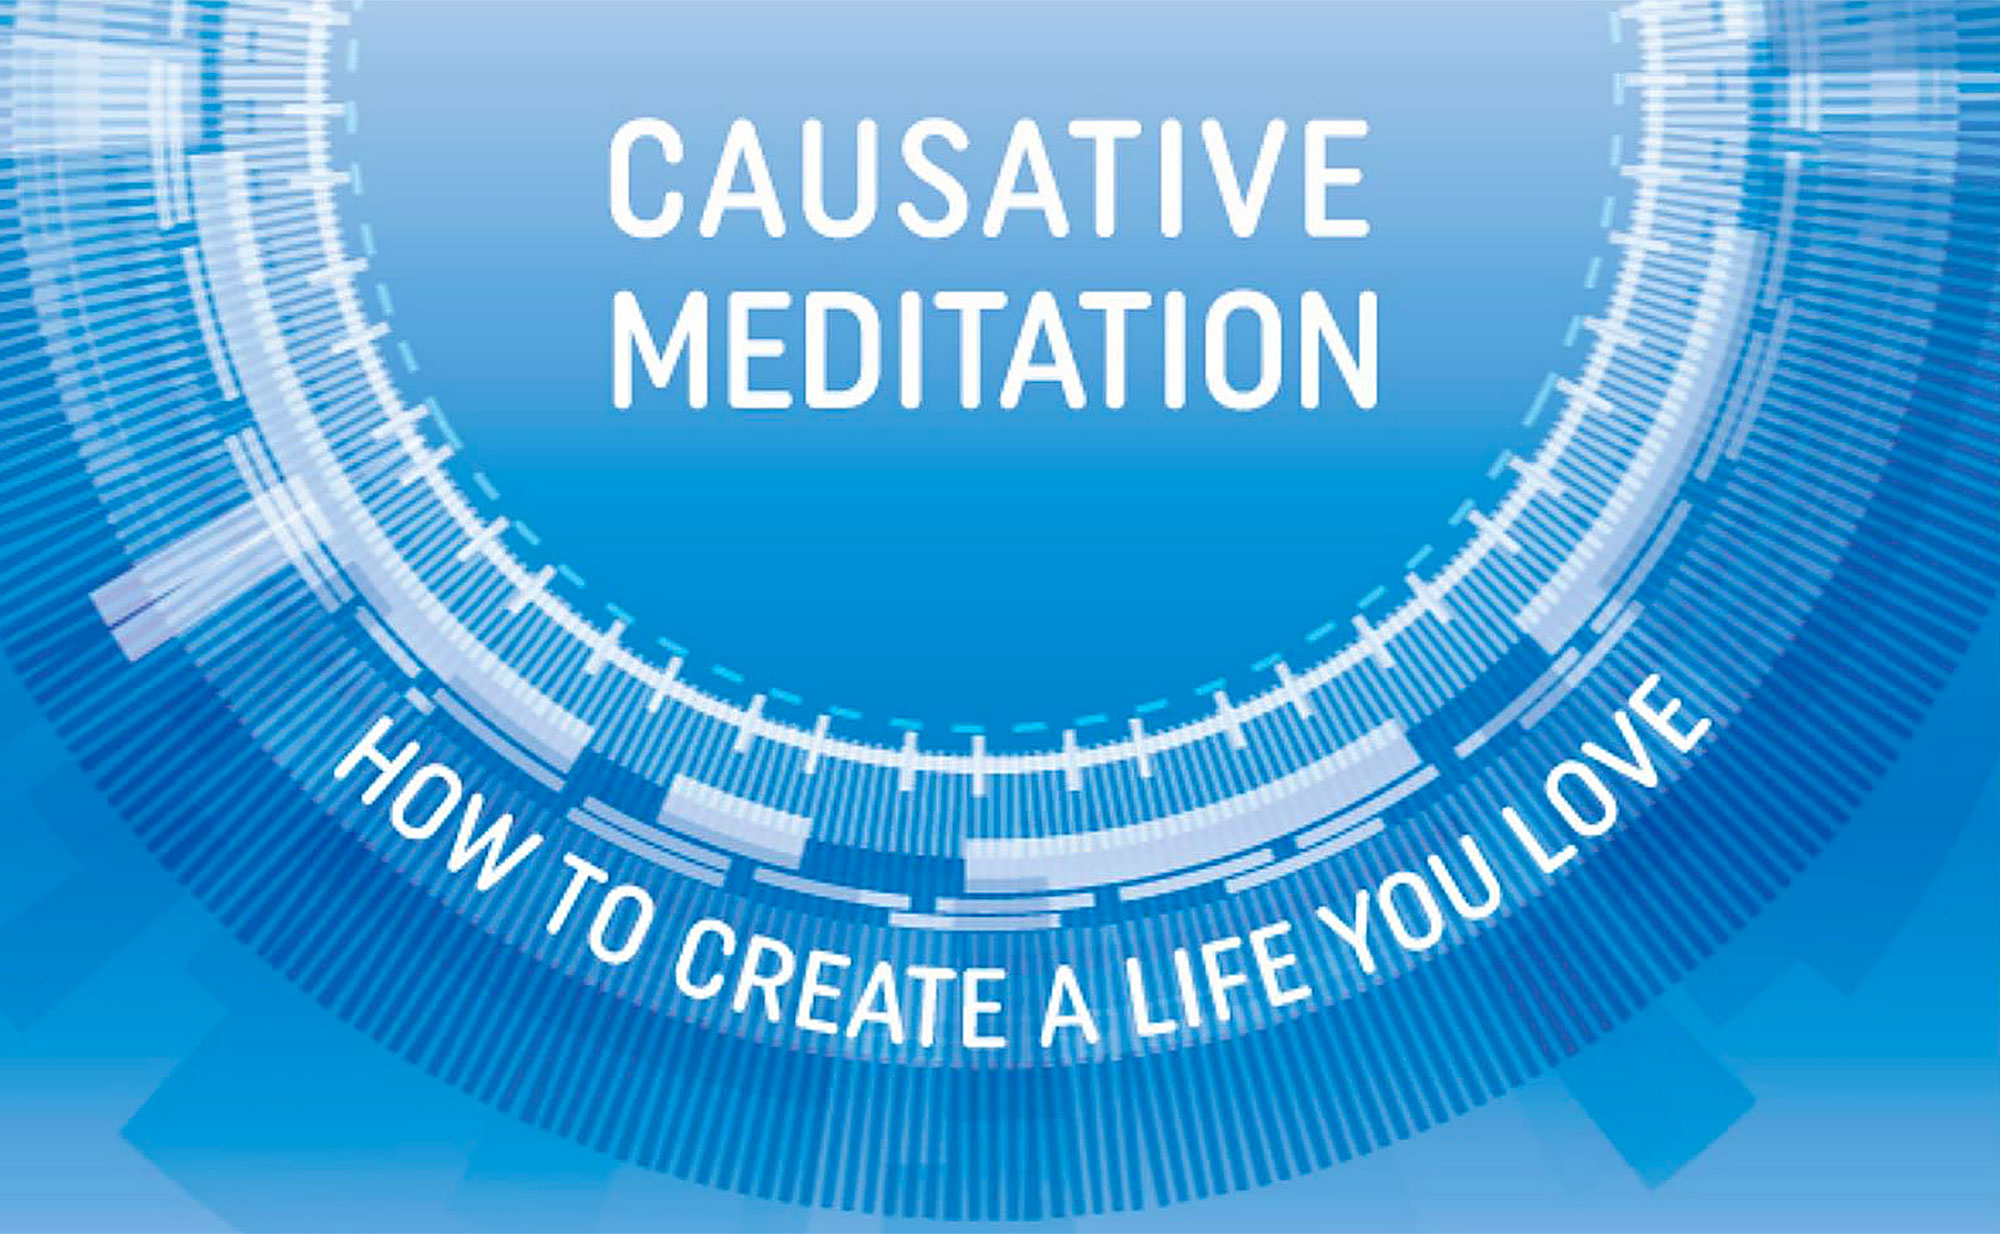 world yoga institute course causative meditation featured image